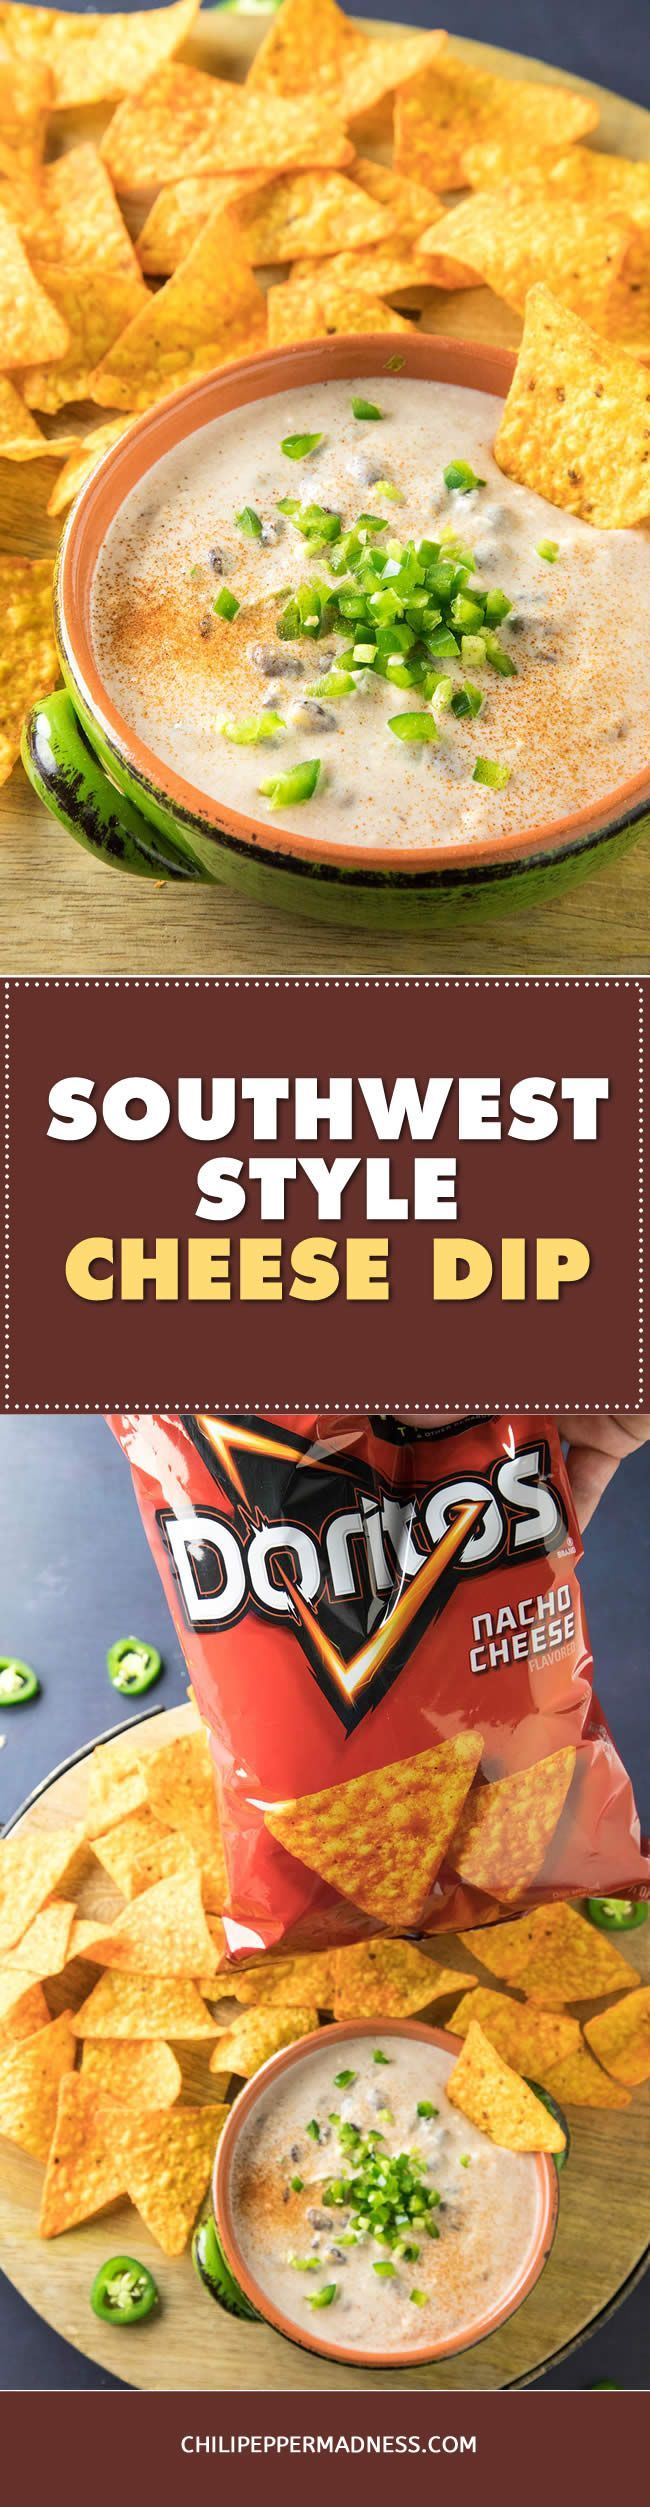 Southwest-Style Cheese Dip - The game day snack table just got better with this easy southwest-style cheese dip recipe that's just begging for DORITOS®️️ Nacho Cheese Flavored Tortilla Chips. #sponsored @fritolay